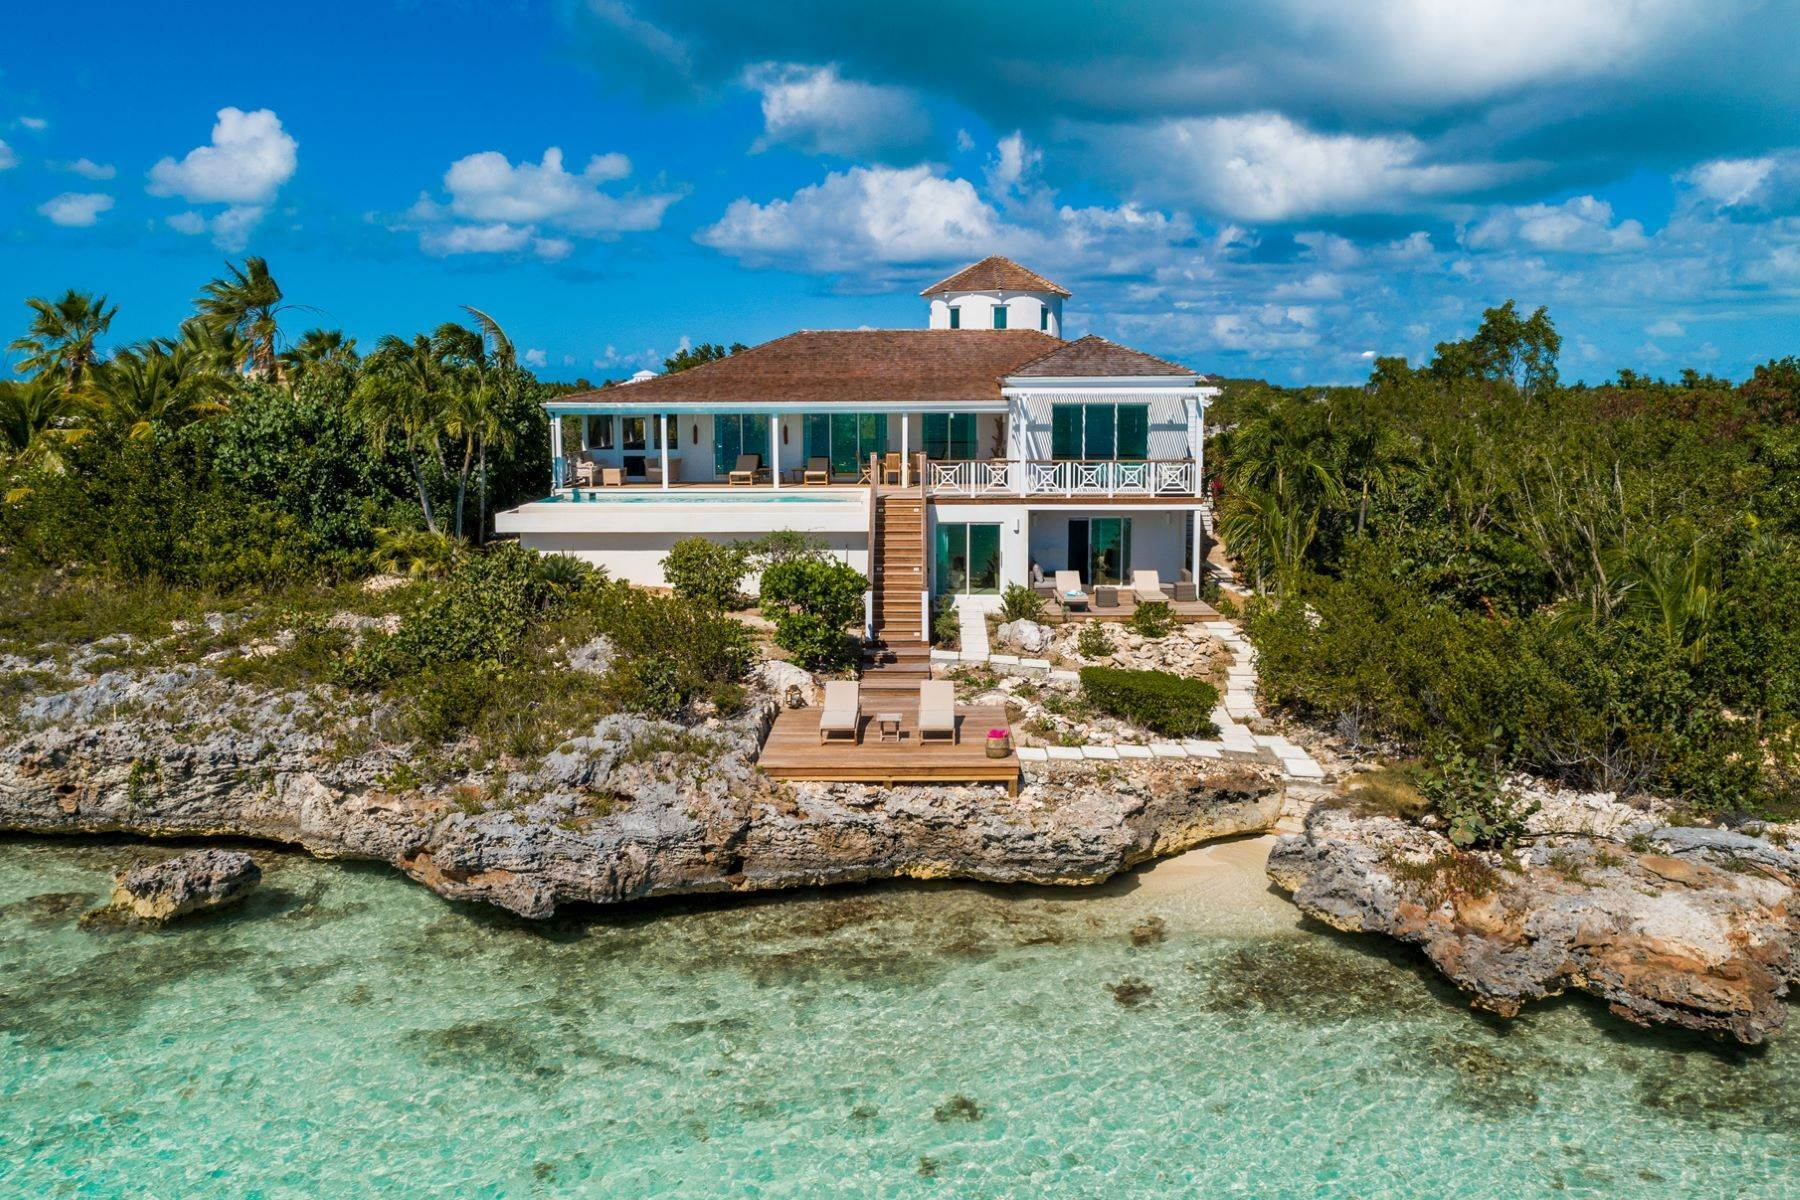 Single Family Homes for Sale at Oceanfront, Oceanside Tower Silly Creek, Providenciales TCI Turks And Caicos Islands